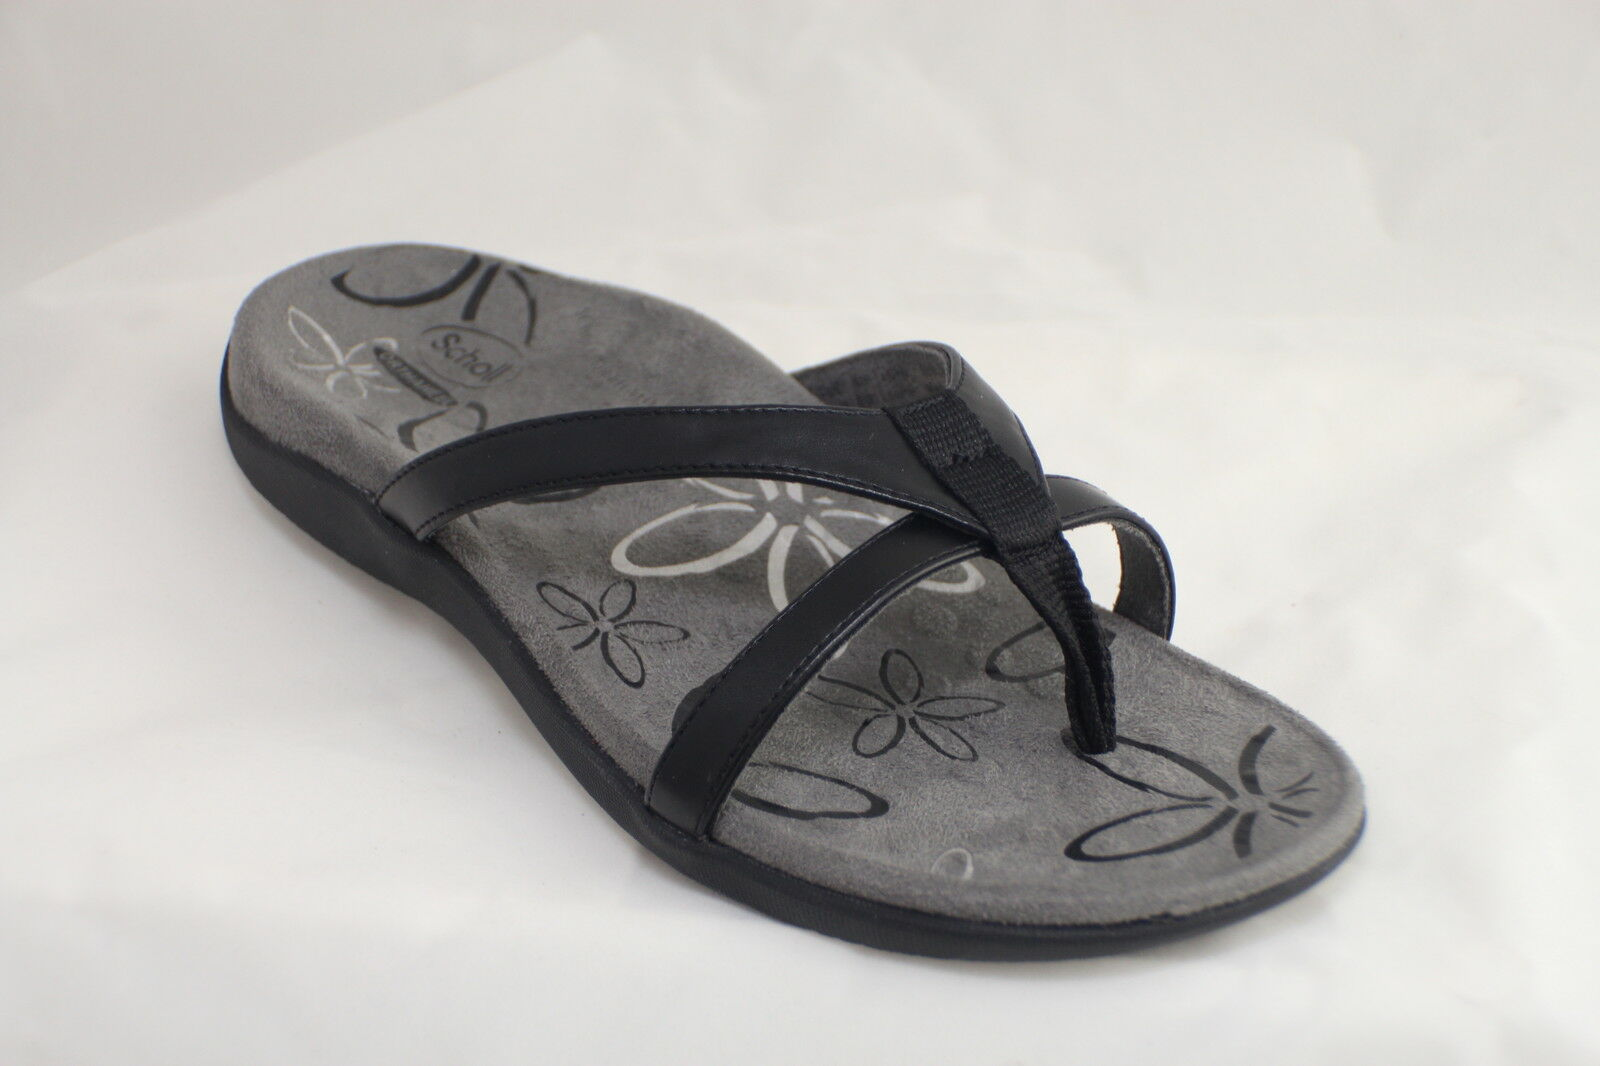 Orthaheel Scholl Orthotic Orthotics Women's Moraga Sandals Black